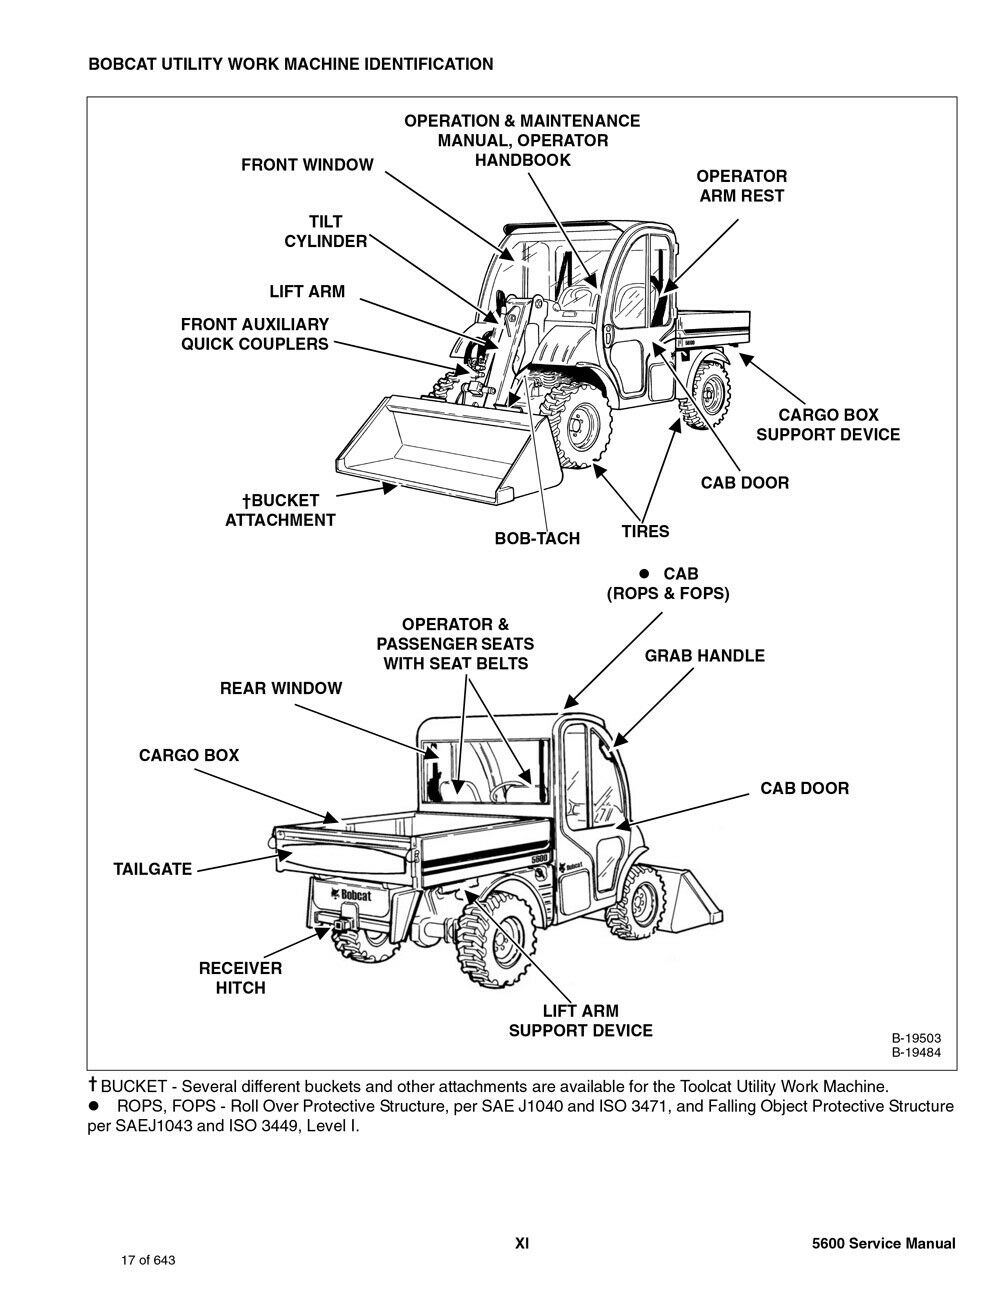 Bobcat Tool Cat Manual Toshiba Wiring Diagrams 50hm66 Television Array Toolcat 5600 Utility Vehicle Repair Service 6902819 Ebay Rh